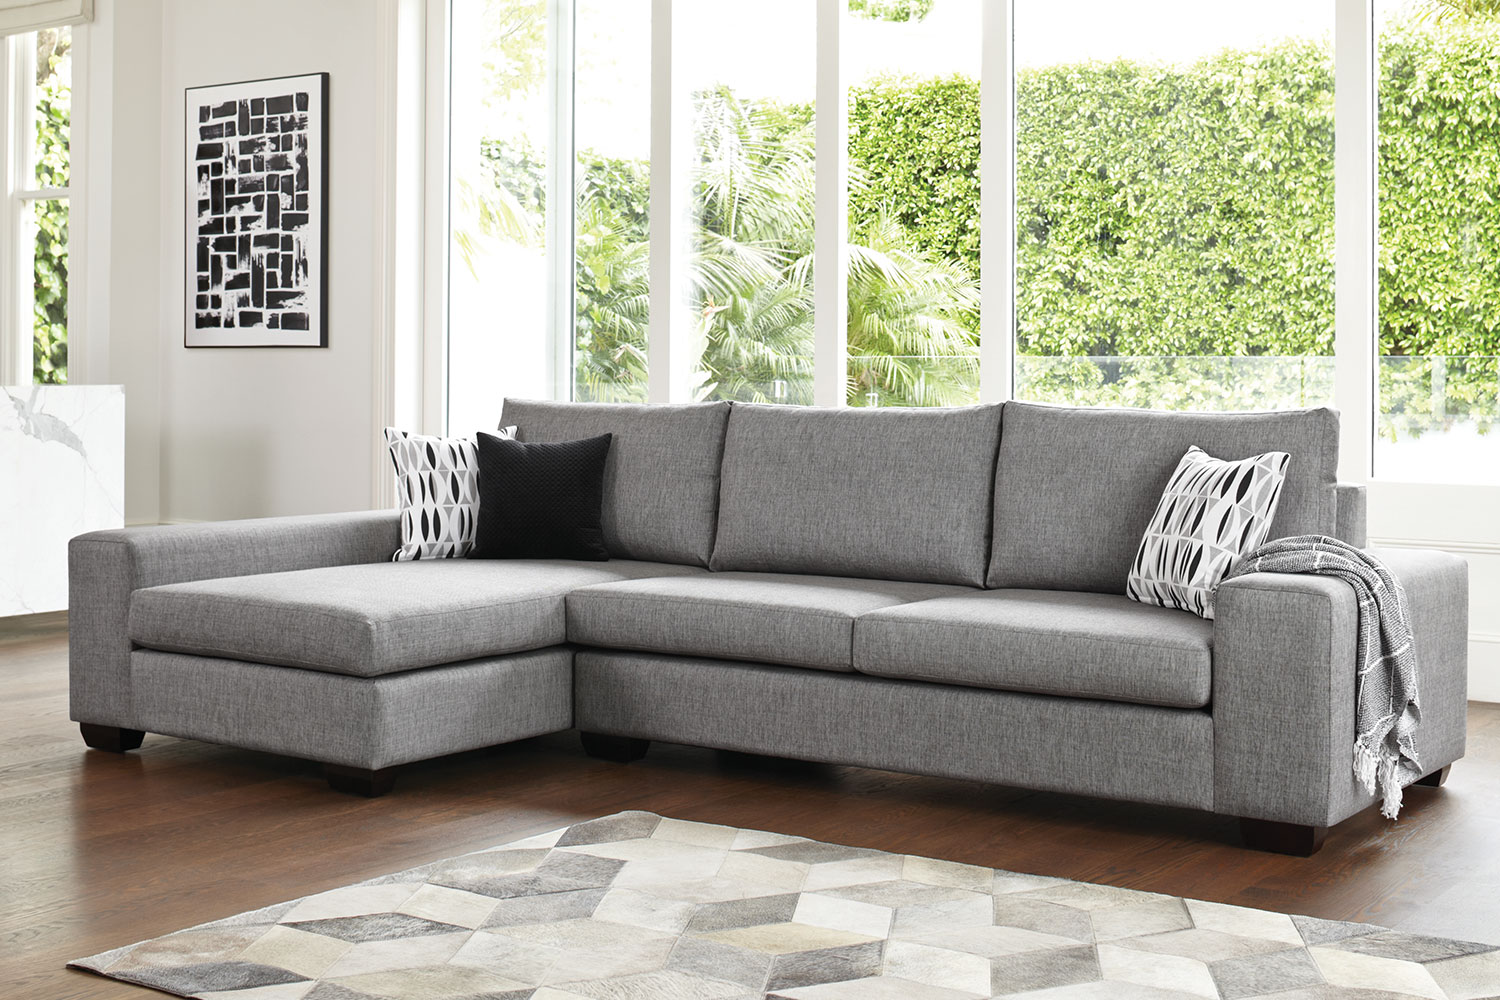 kingdom 4 seater fabric sofa with chaise by furniture haven ... LZHEUQS